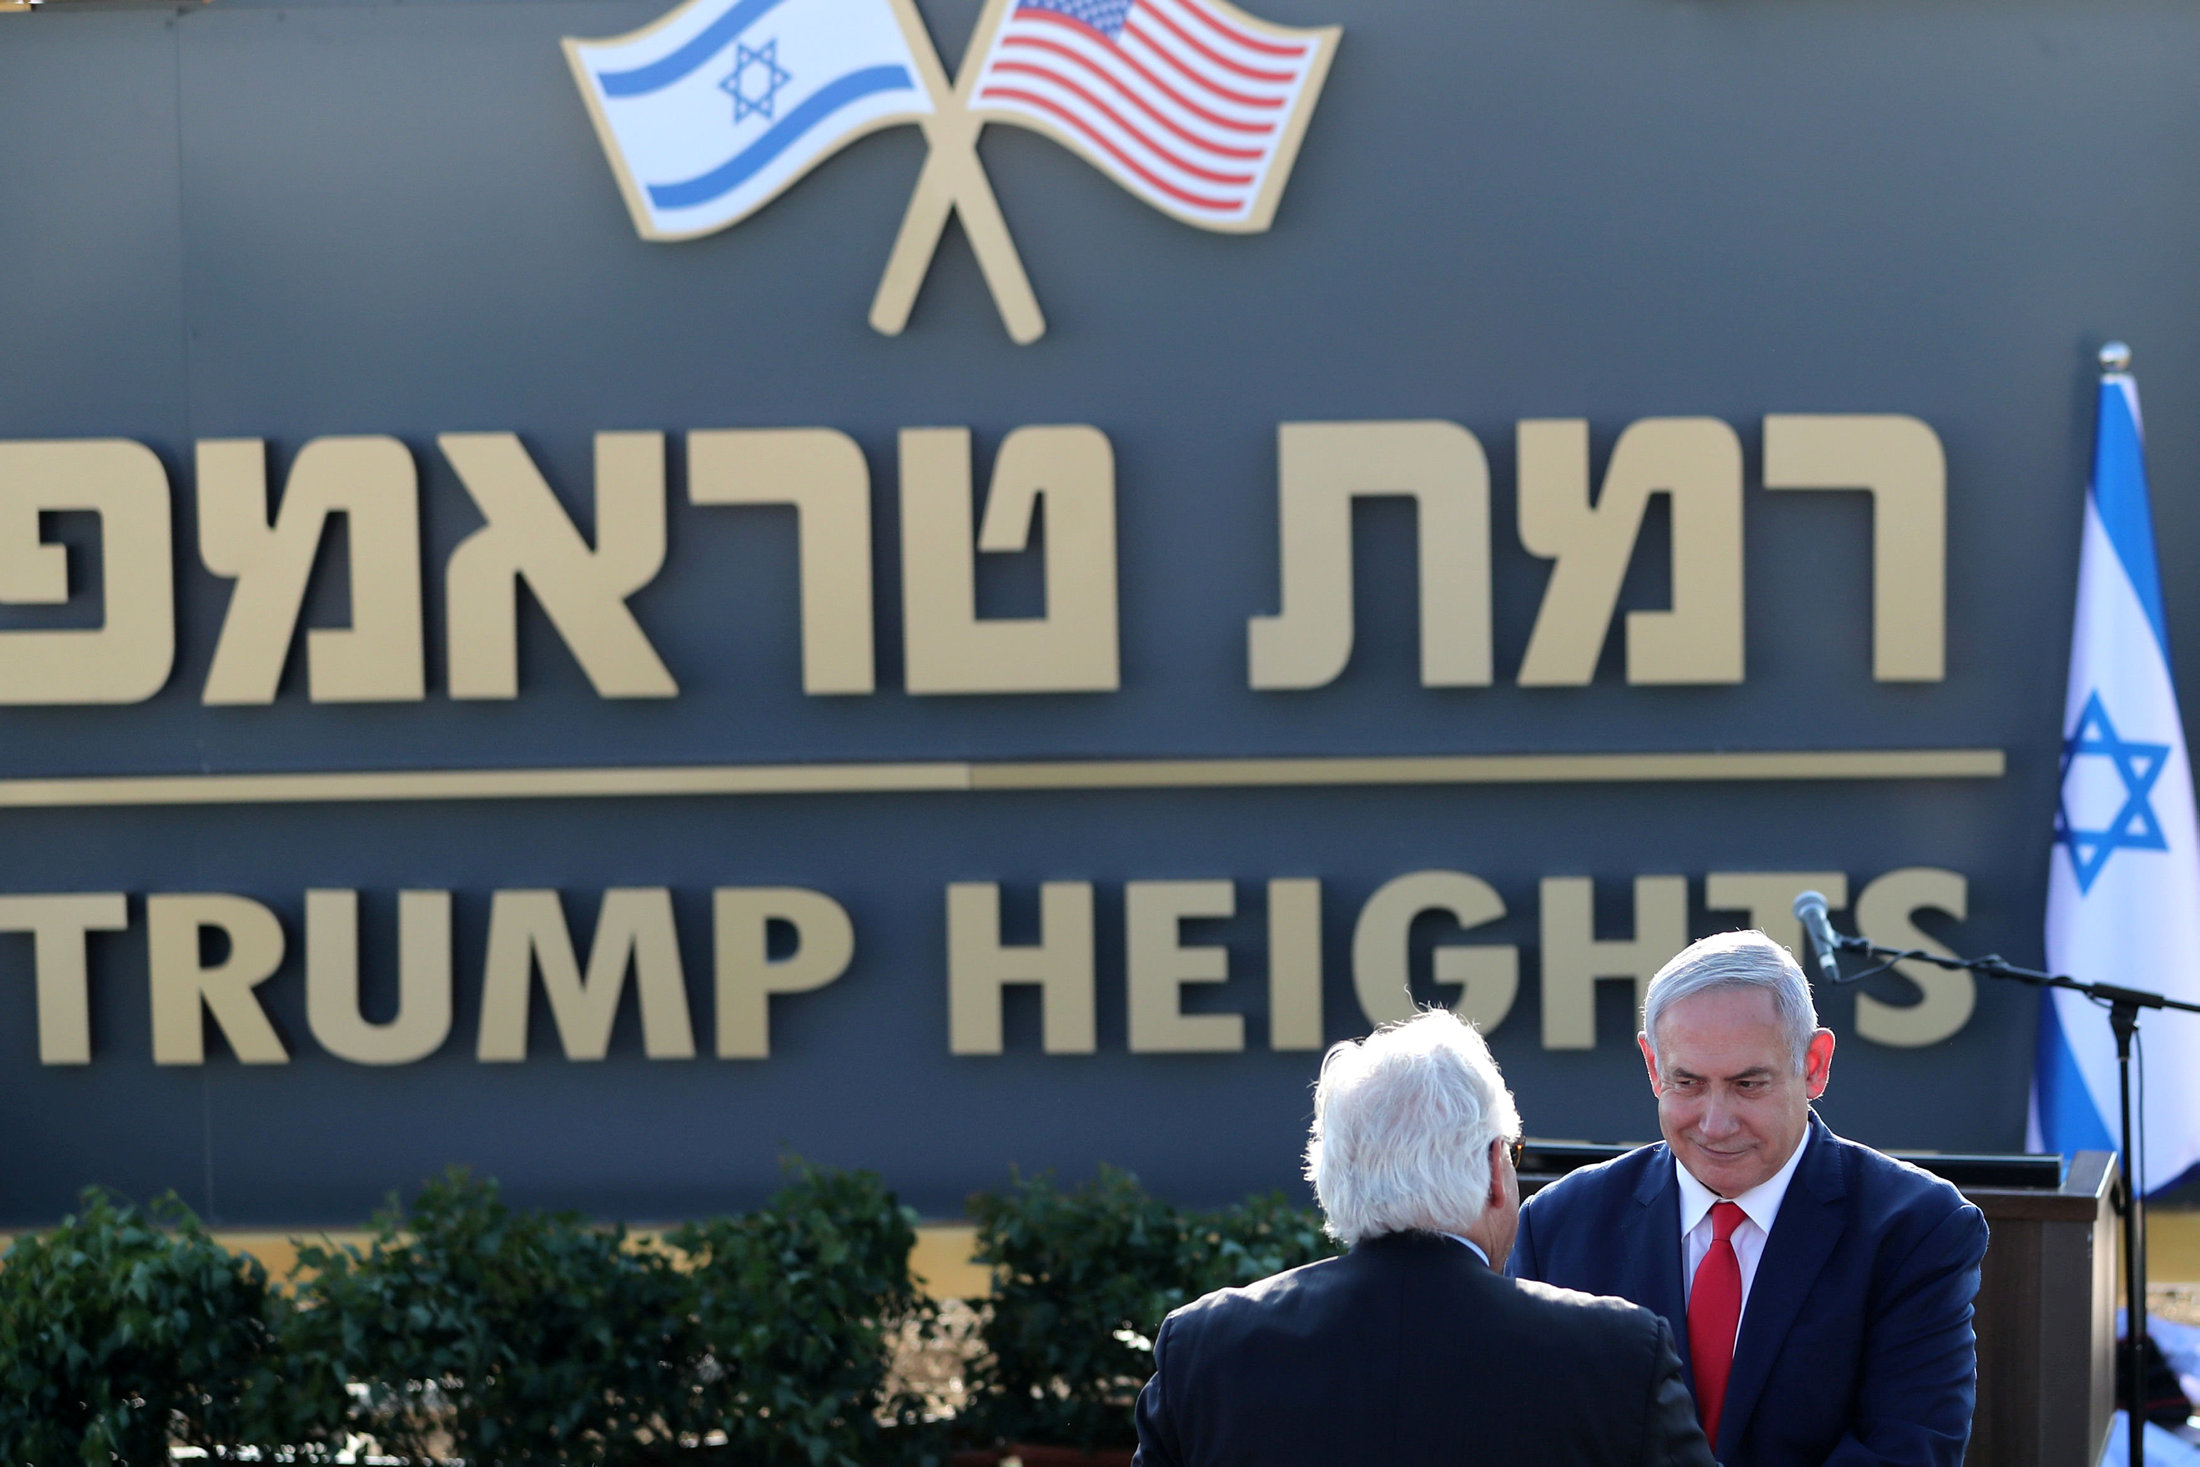 Israeli Prime Minister Benjamin Netanyahu shake hands with U.S. Ambassador to Israel David Friedman as they attend a ceremony to unveil a sign for a new community named after U.S. President Donald Trump, in the Israeli-occupied Golan Heights